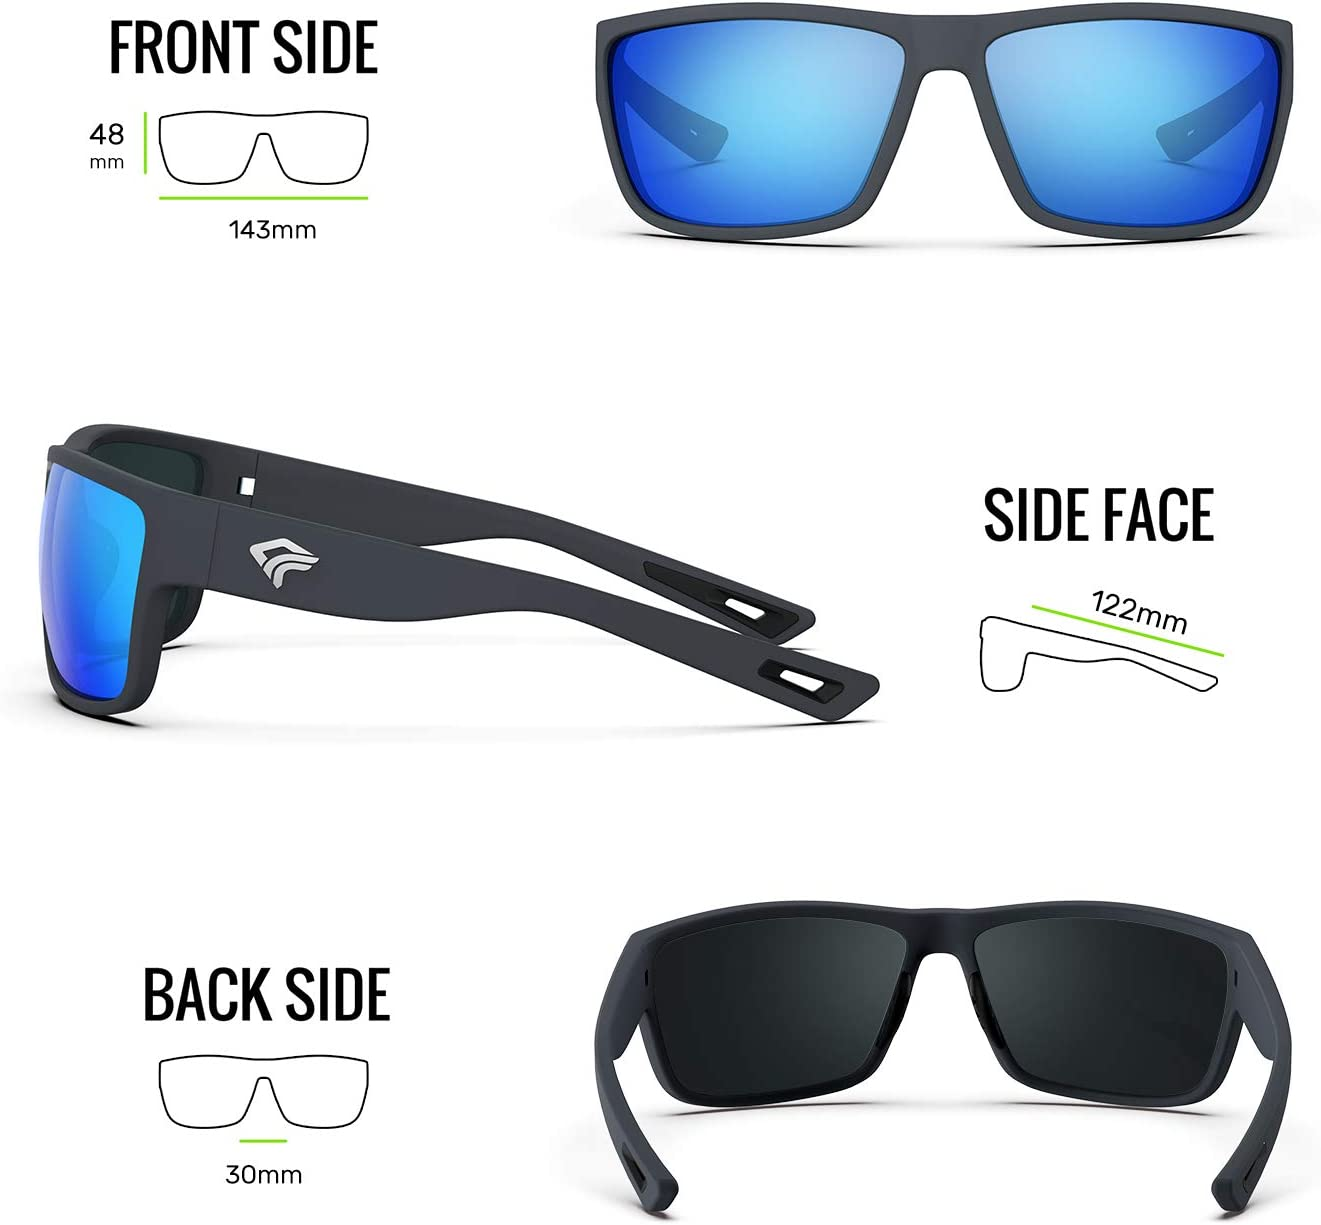 TOREGE Polarized Sports Sunglasses for Men and Women Cycling Running Golf Fishing Sunglasses TR26 (Matte Grey Frame & Ice Blue Lens): Clothing